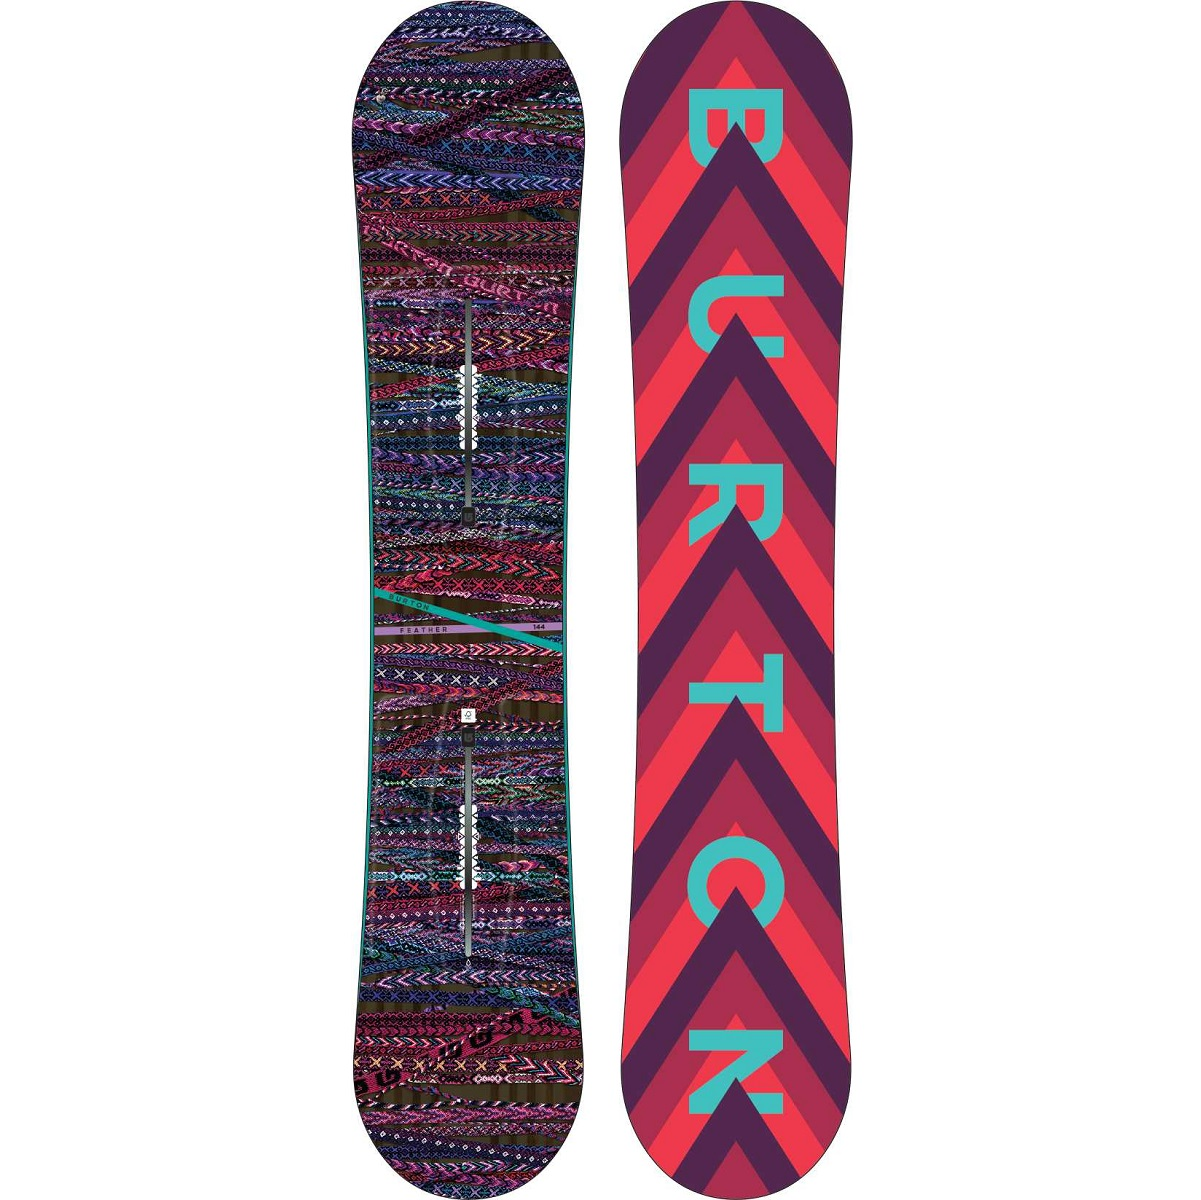 burton snowboard Skiscom online snow reviews for burton snowboards use these video reviews on burton snowboards to make your decision.